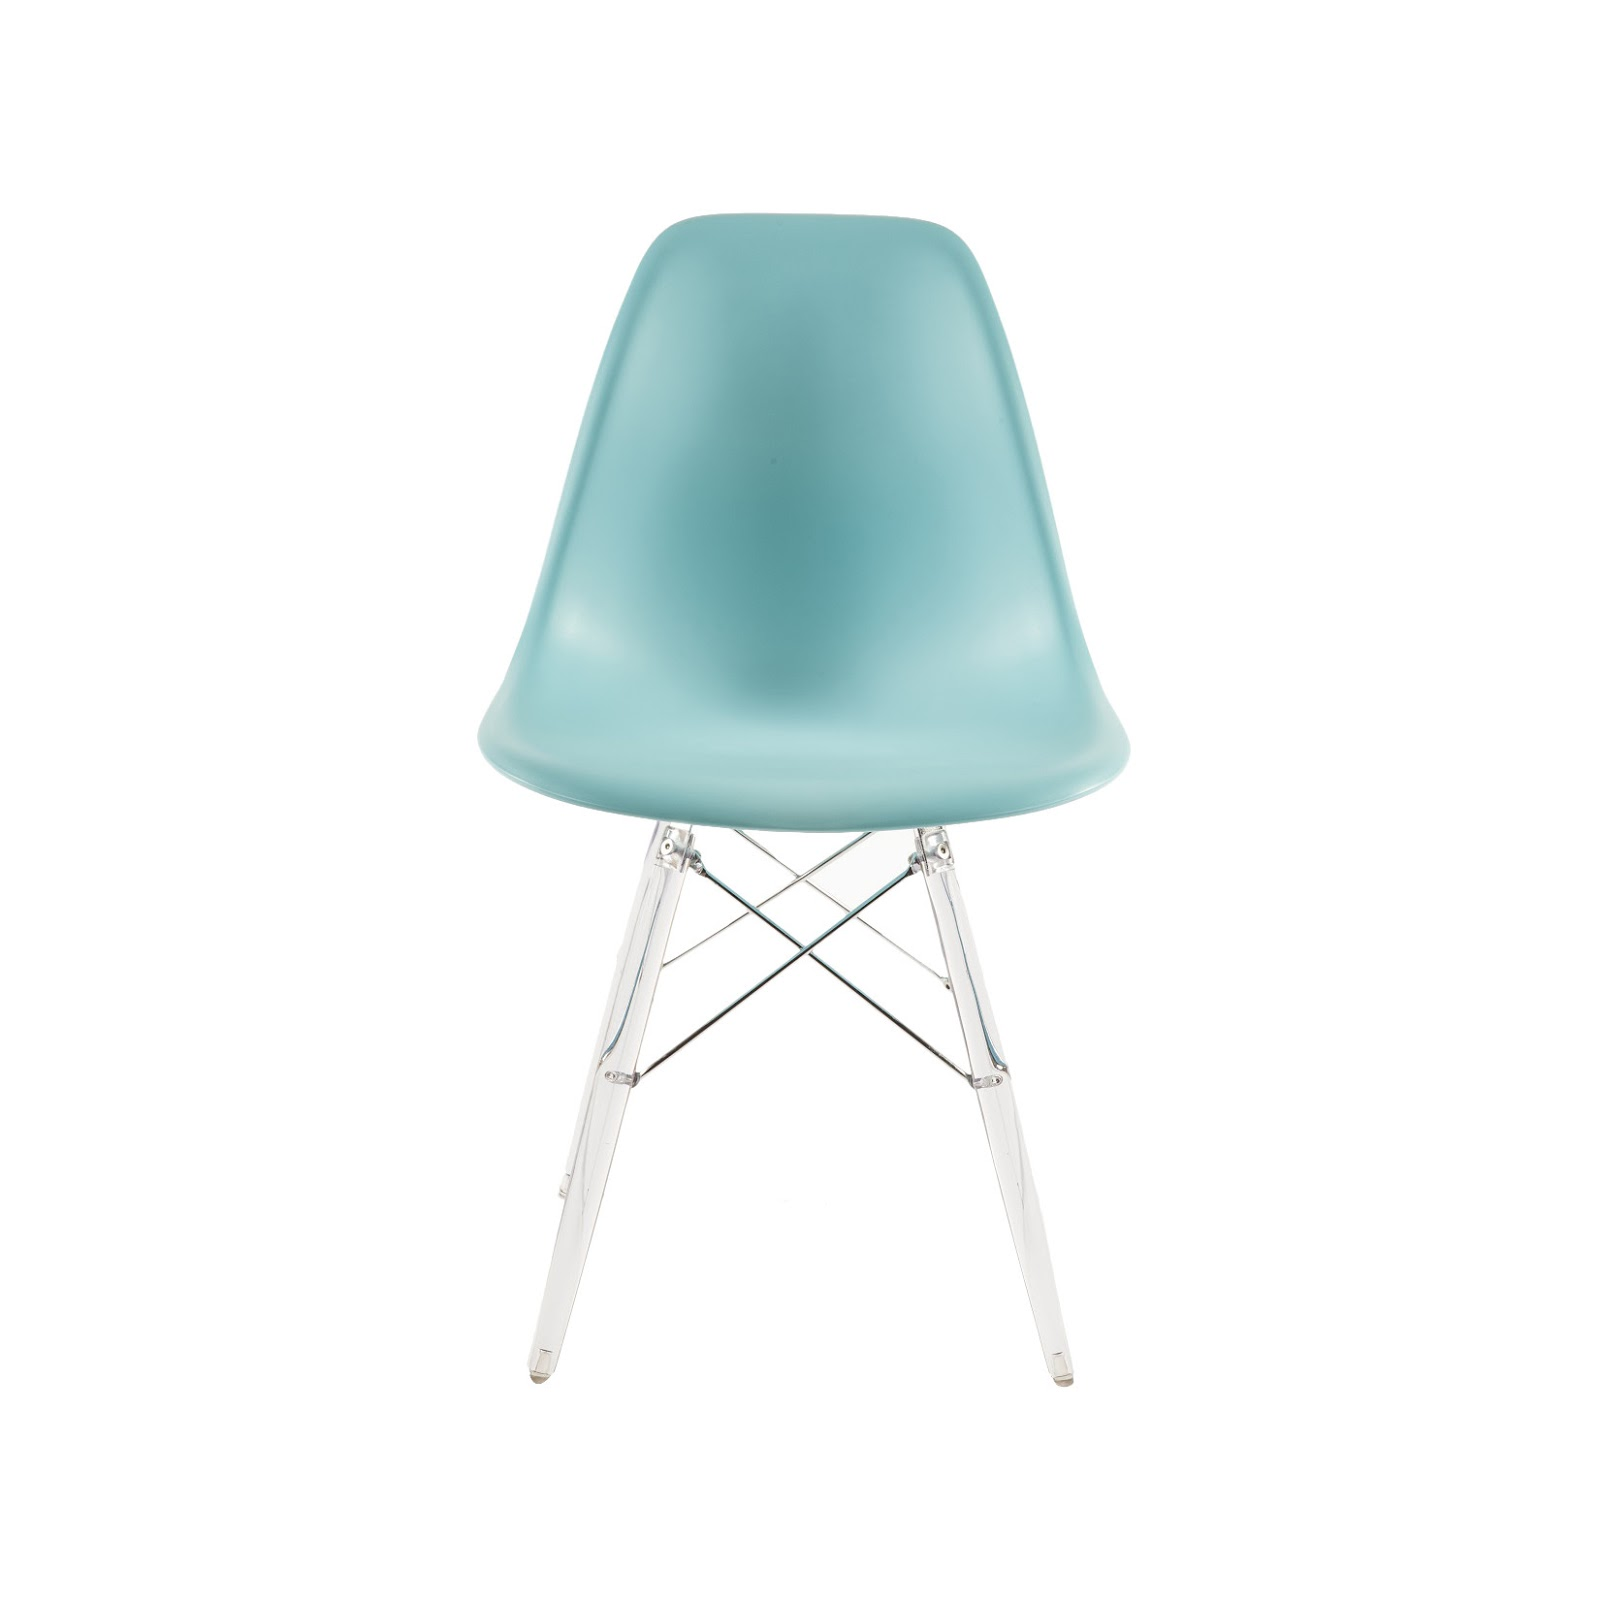 turquoise mid-century modern dining chair // Wayfair